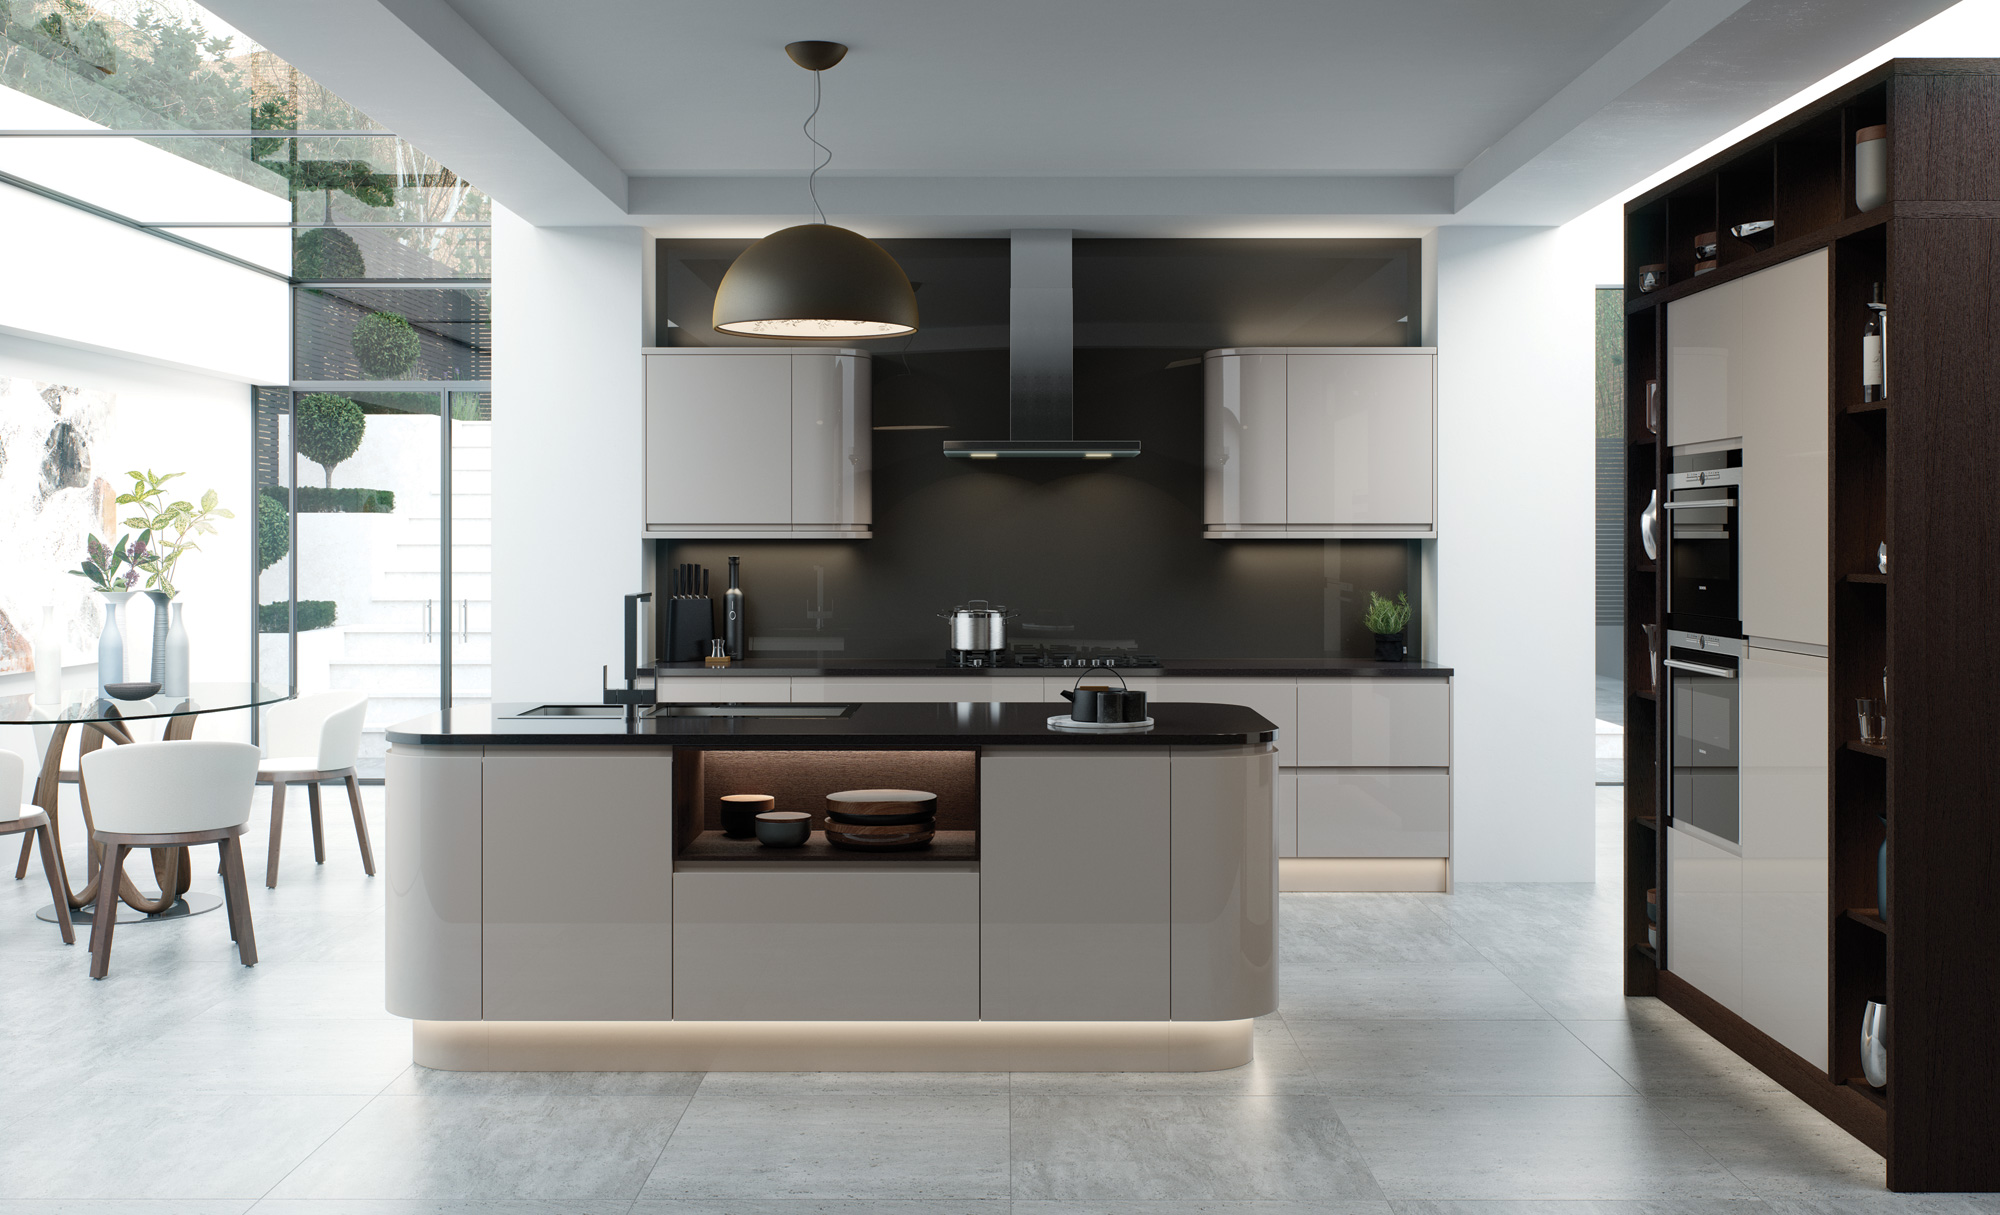 Uncategorized Design Your Kitchen design your kitchen with our planner stori a contemporary kitchen